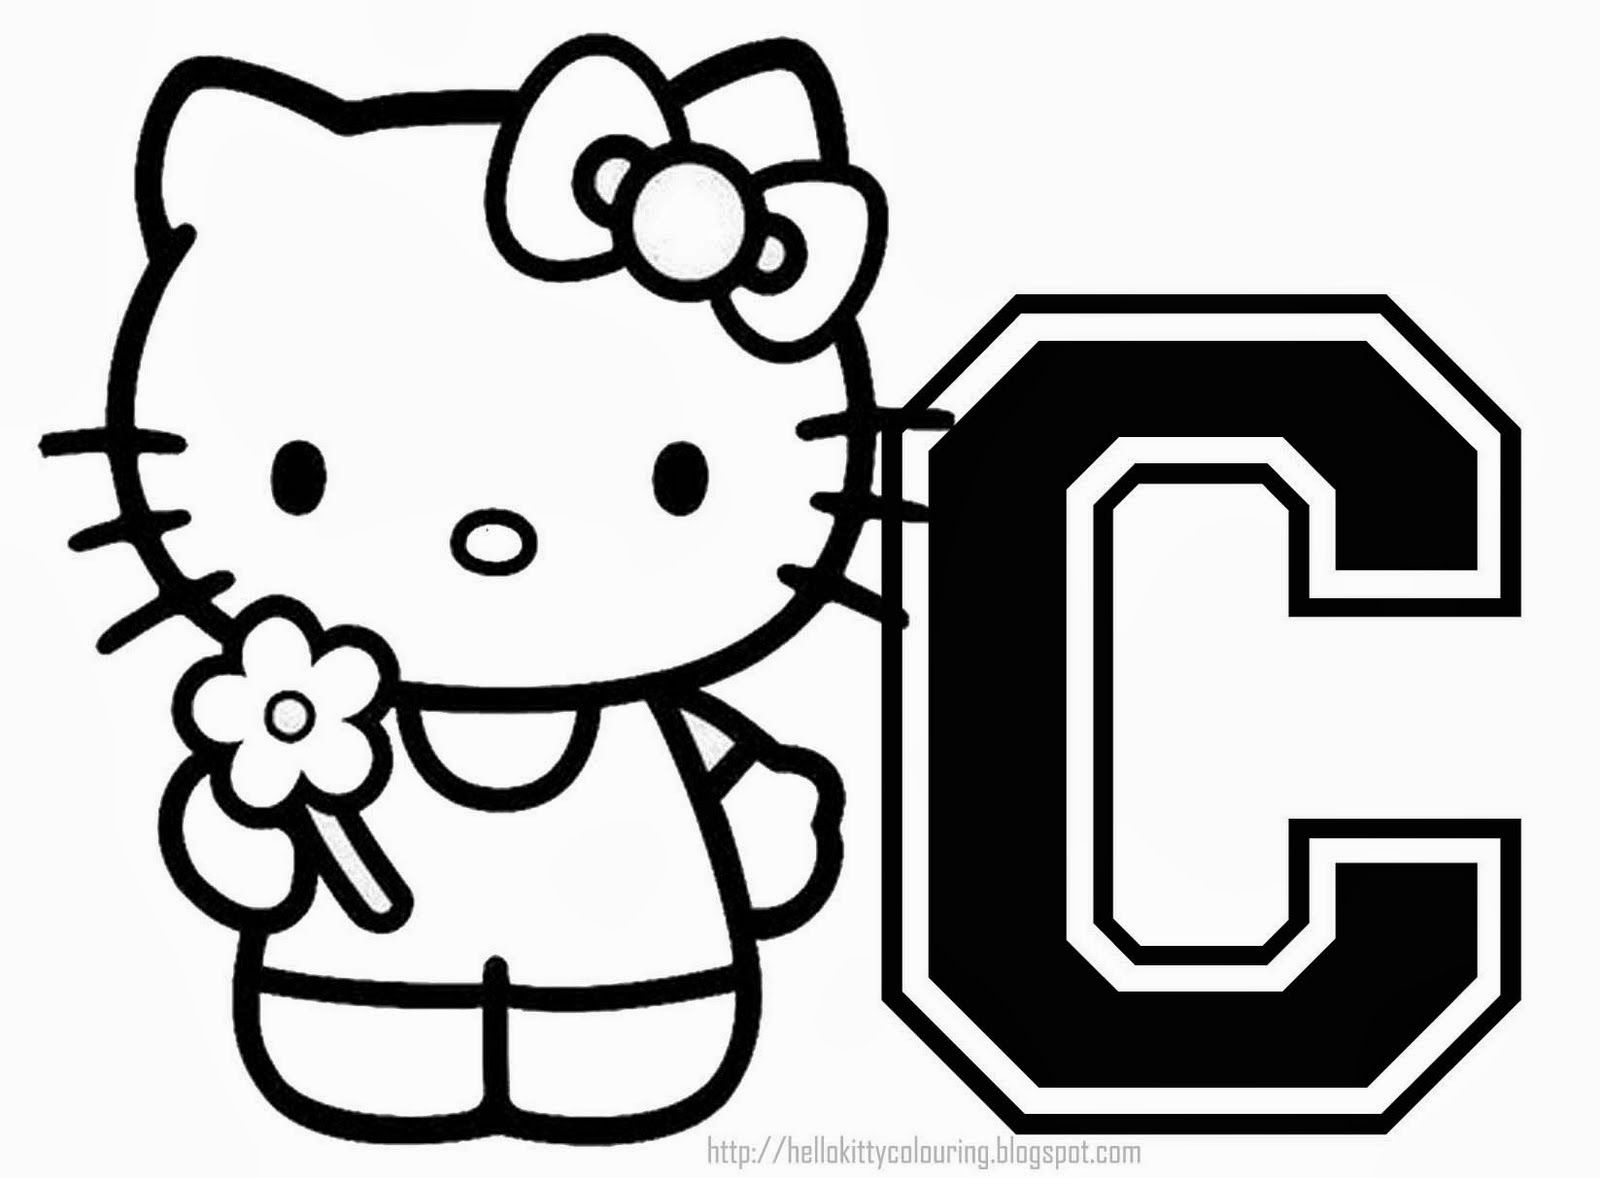 Pin de Hello Kitty en ♥Hello Kitty Alphabet♥ | Pinterest | Hello ...